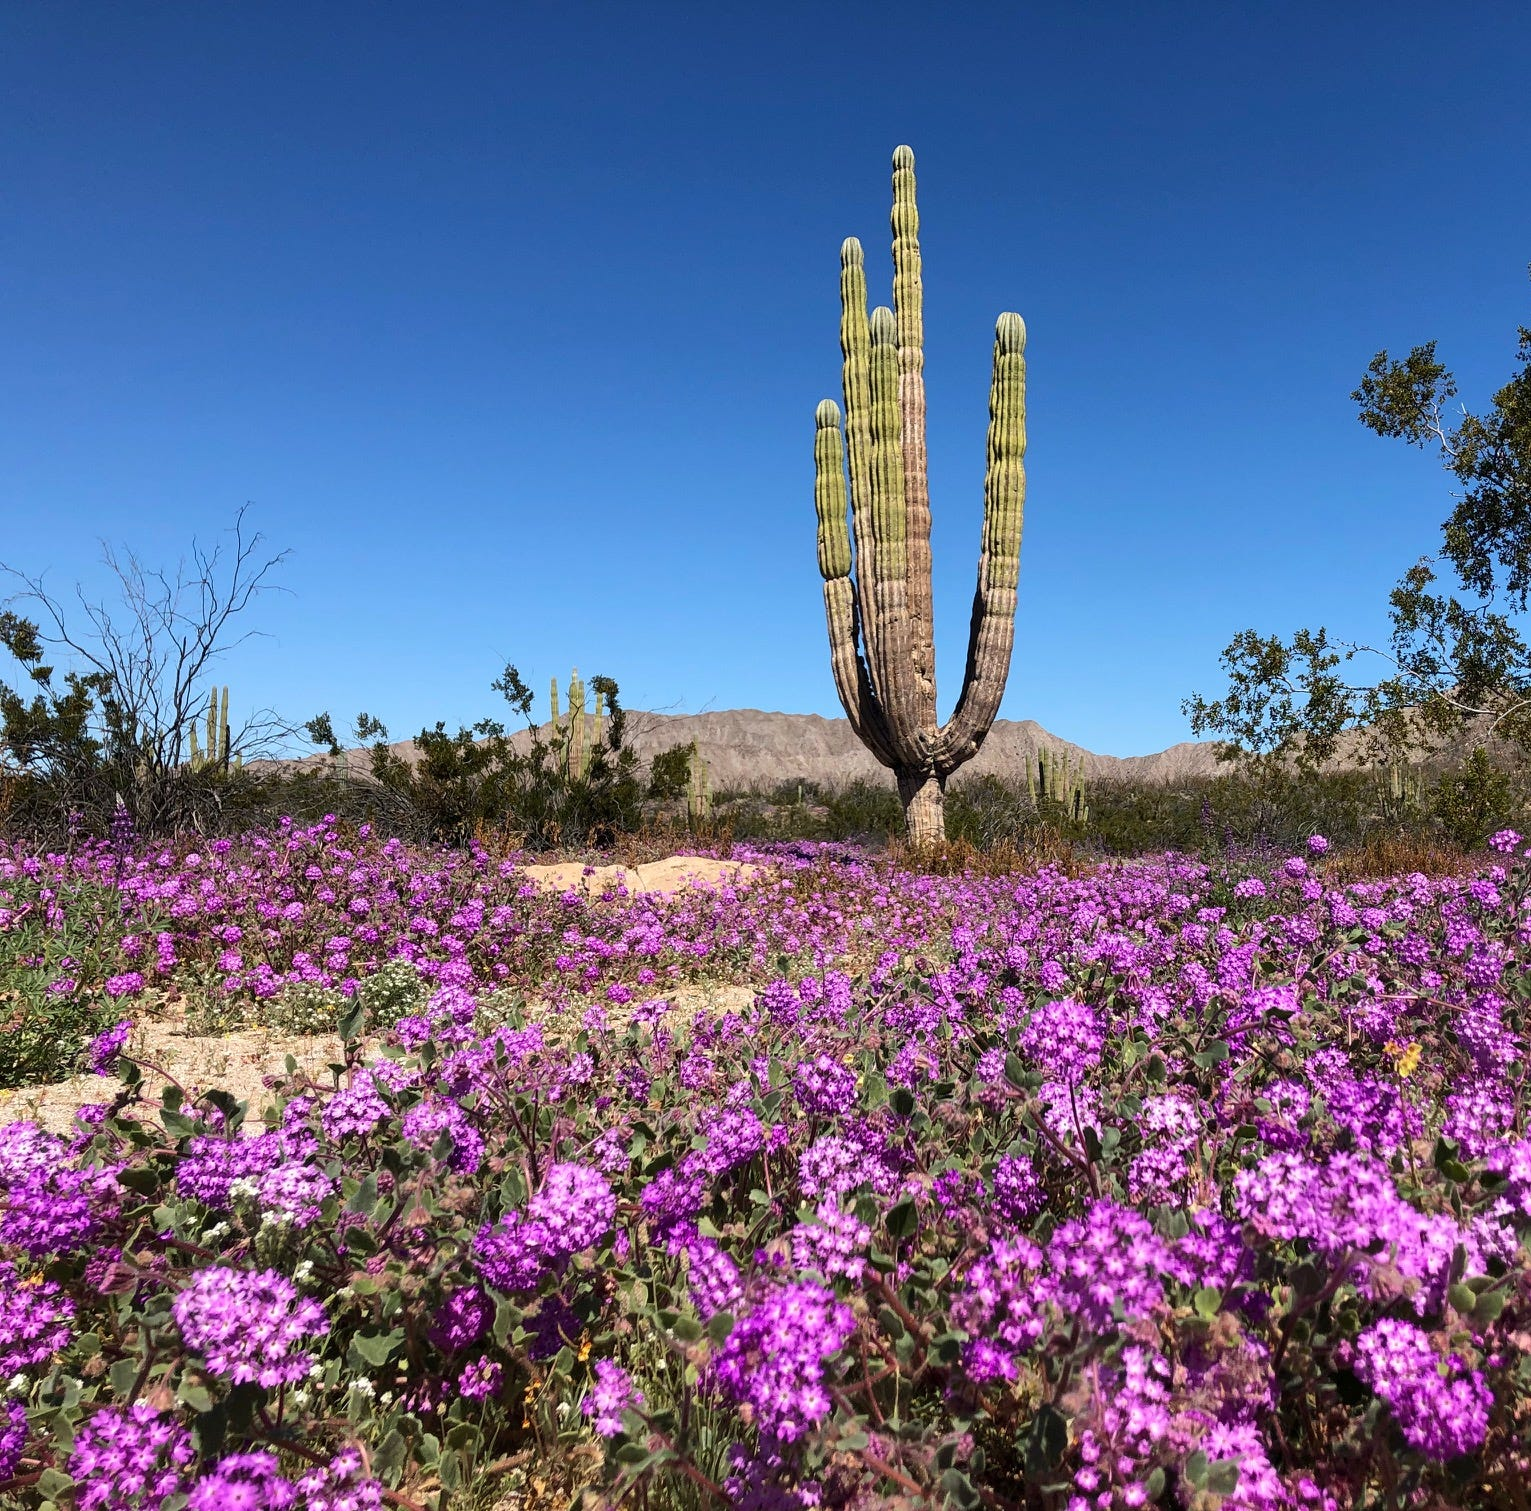 The super bloom has started in Mexico. Pack your bags for San Felipe